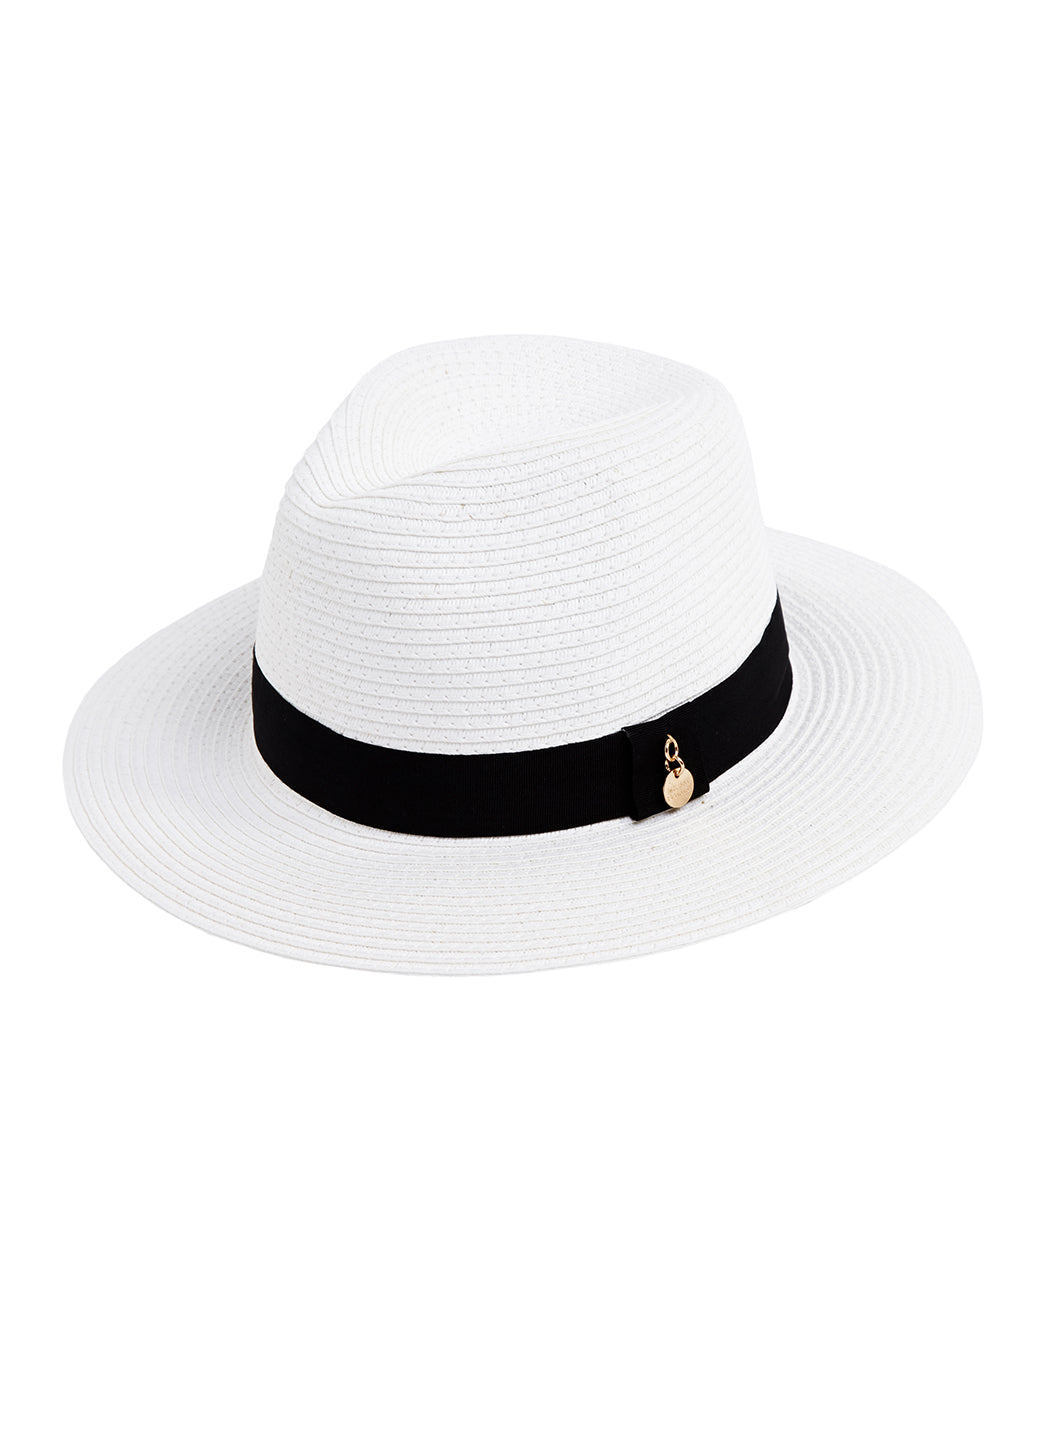 Fedora Hat White Black